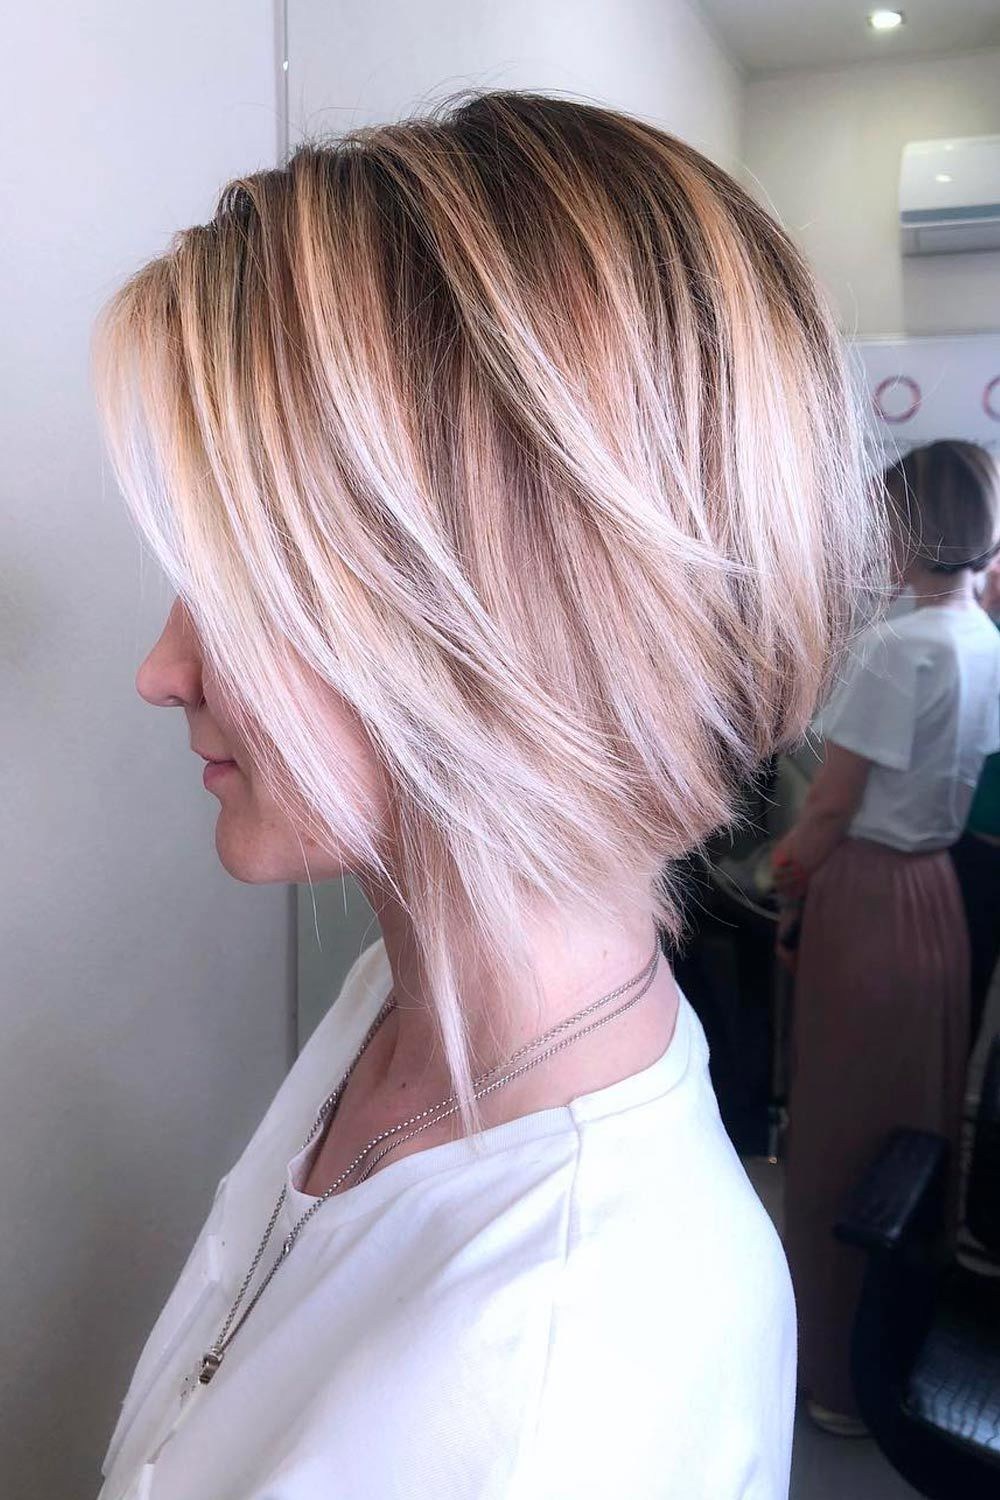 Layered Short Hairstyles For Round Faces, short layered hairstyles for round faces, short haircuts for round faces, pixie cut round face